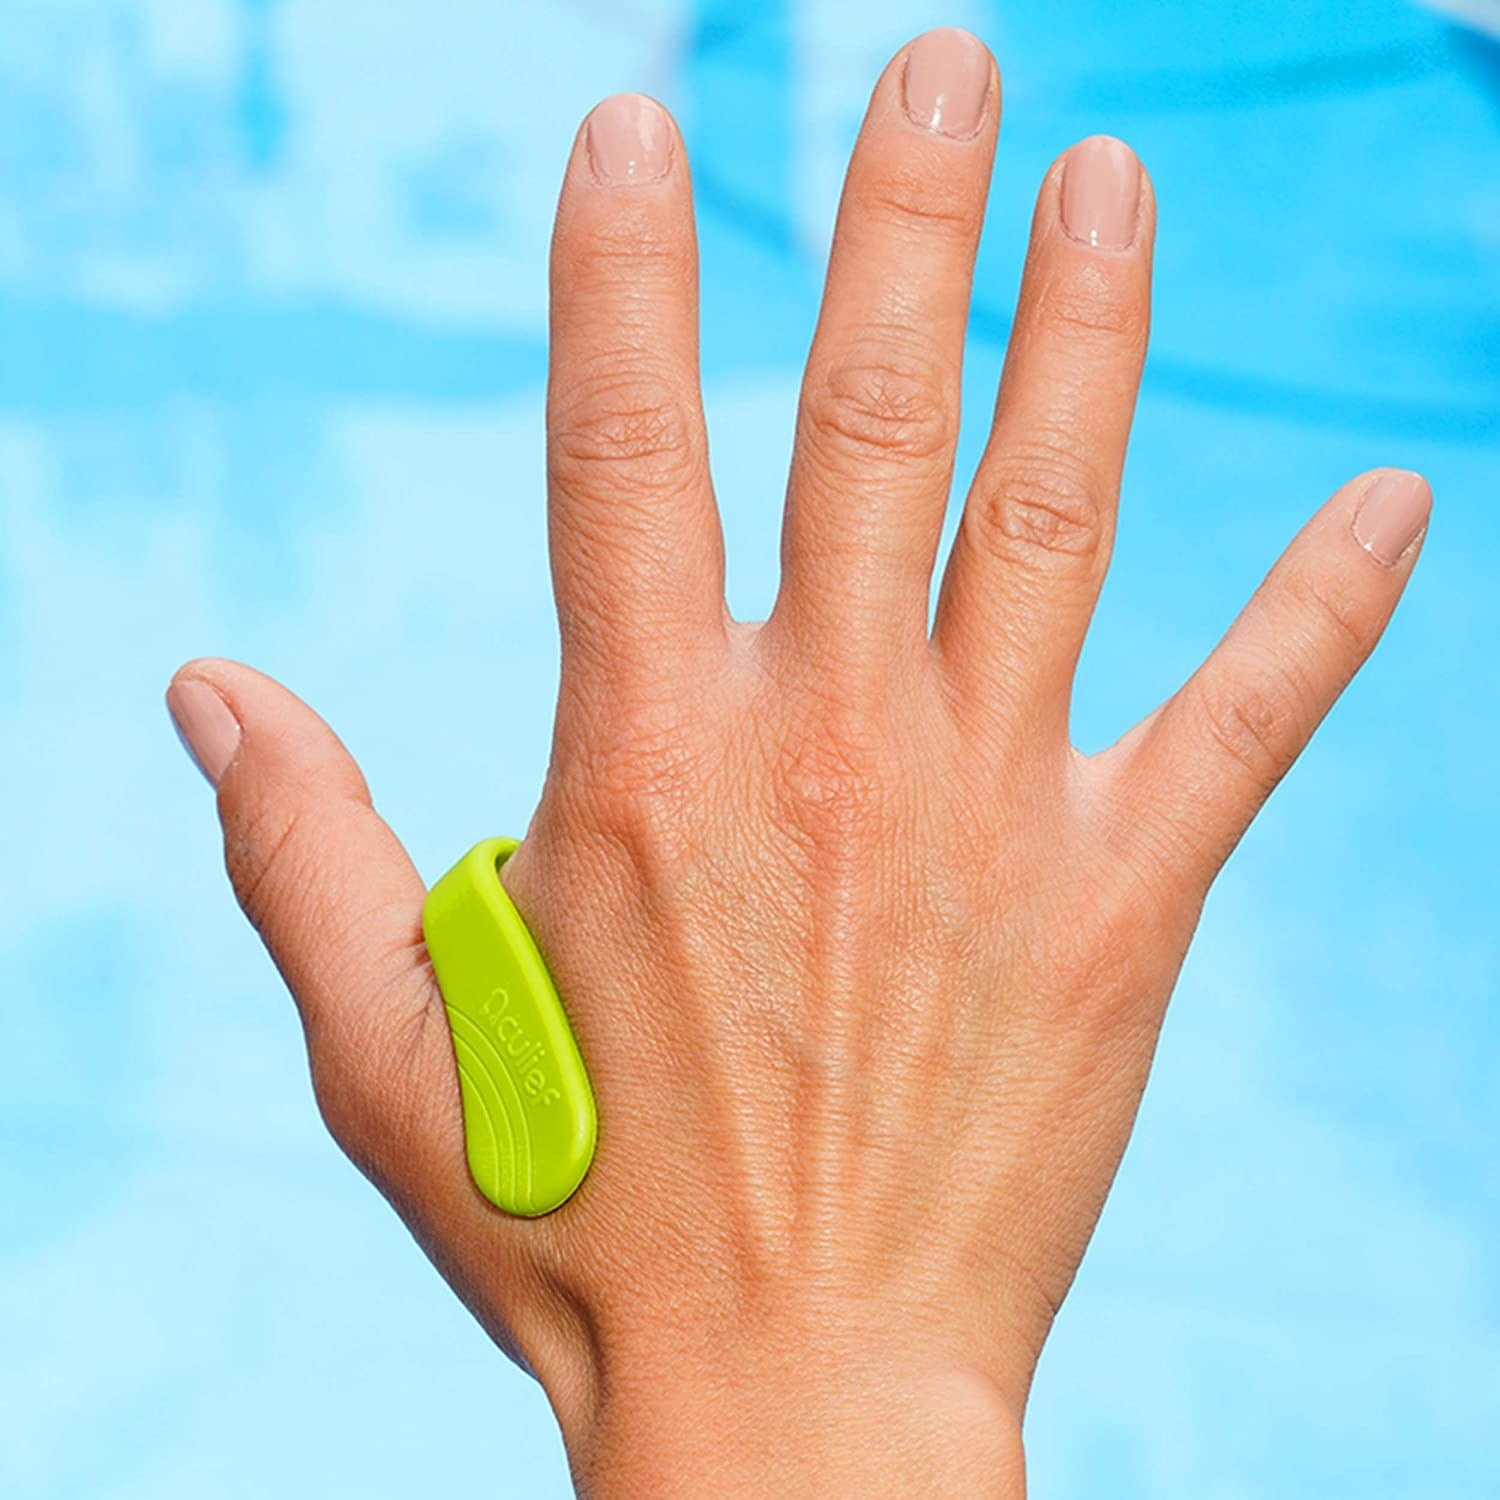 A person holds out their hand while wearing the acupressure tool between their thumb and index finger